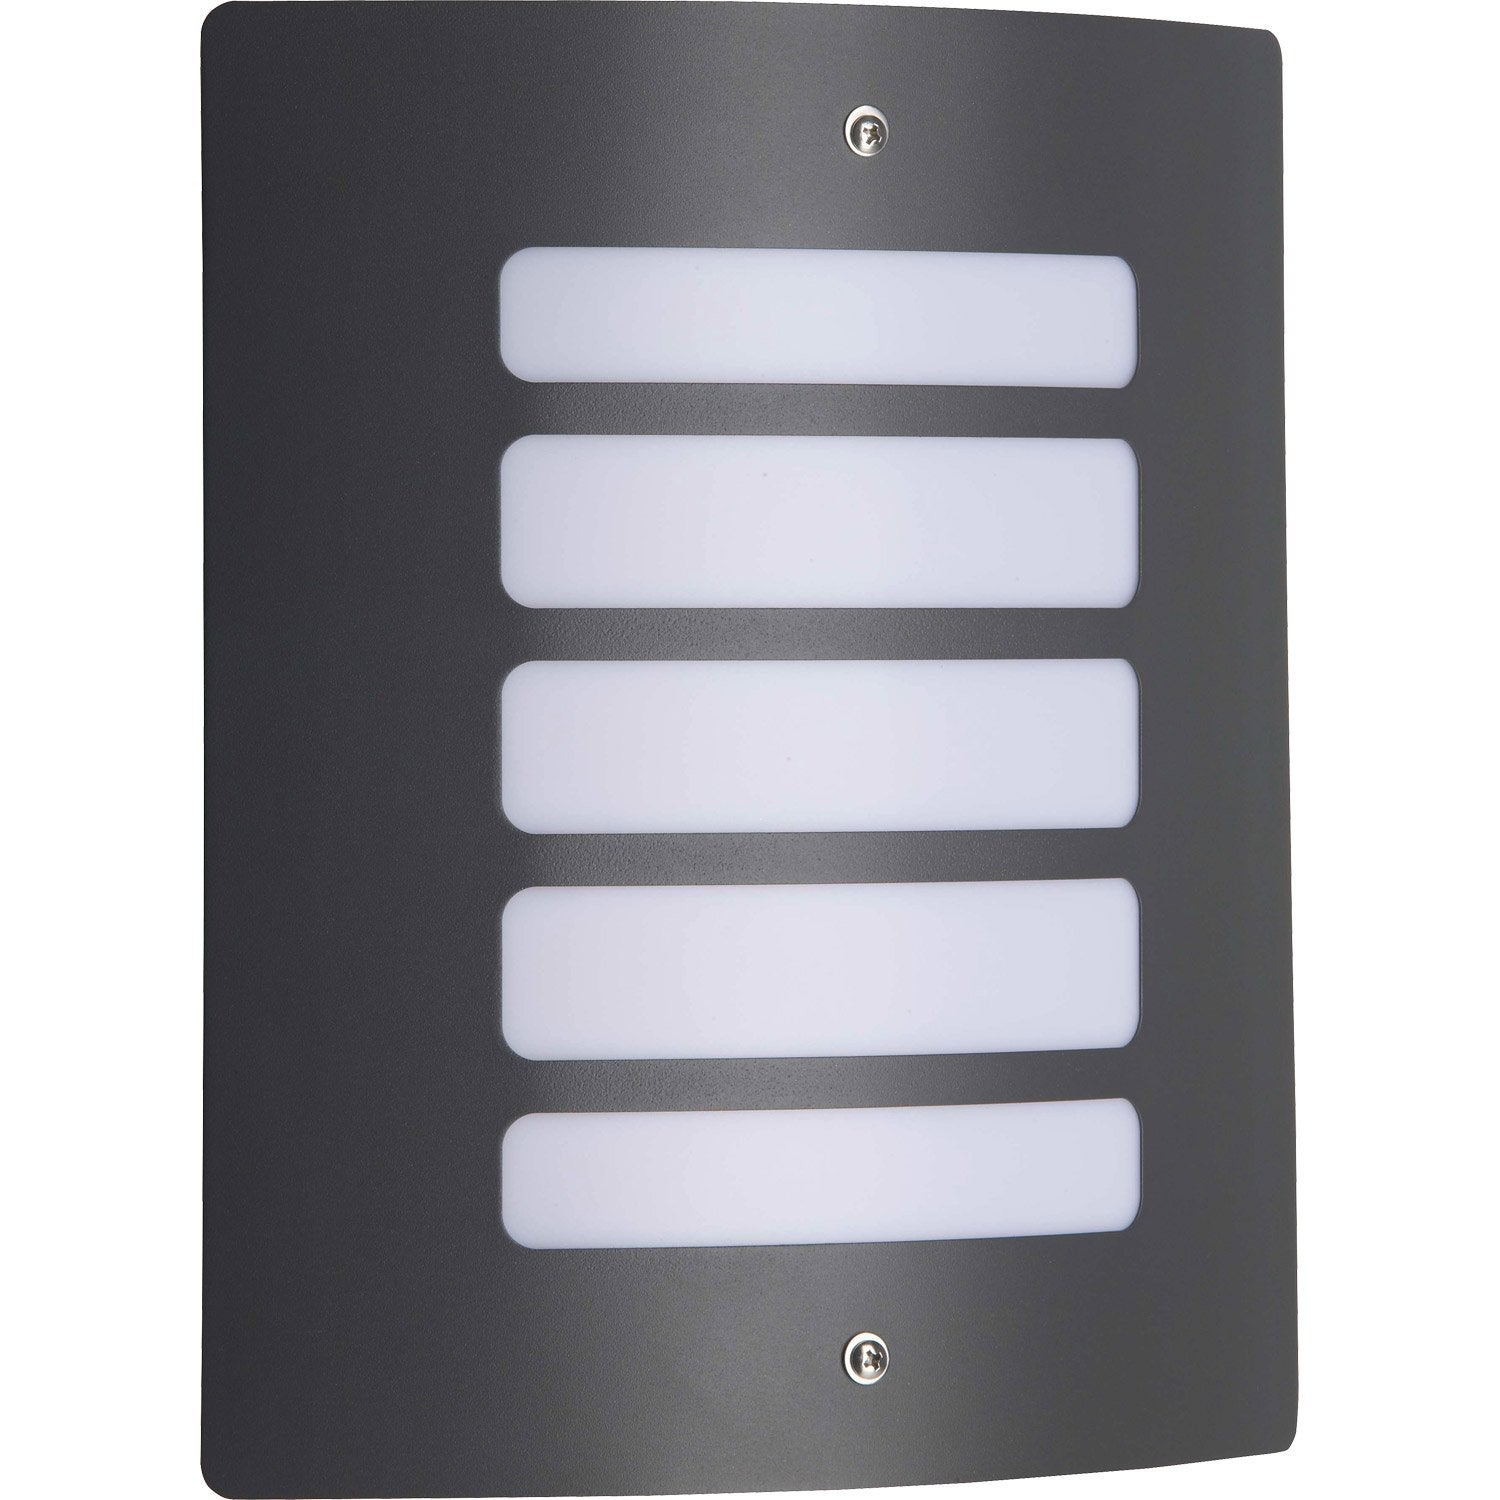 Demi applique ext rieure todd e27 60 w anthracite for Applique murale exterieur anthracite